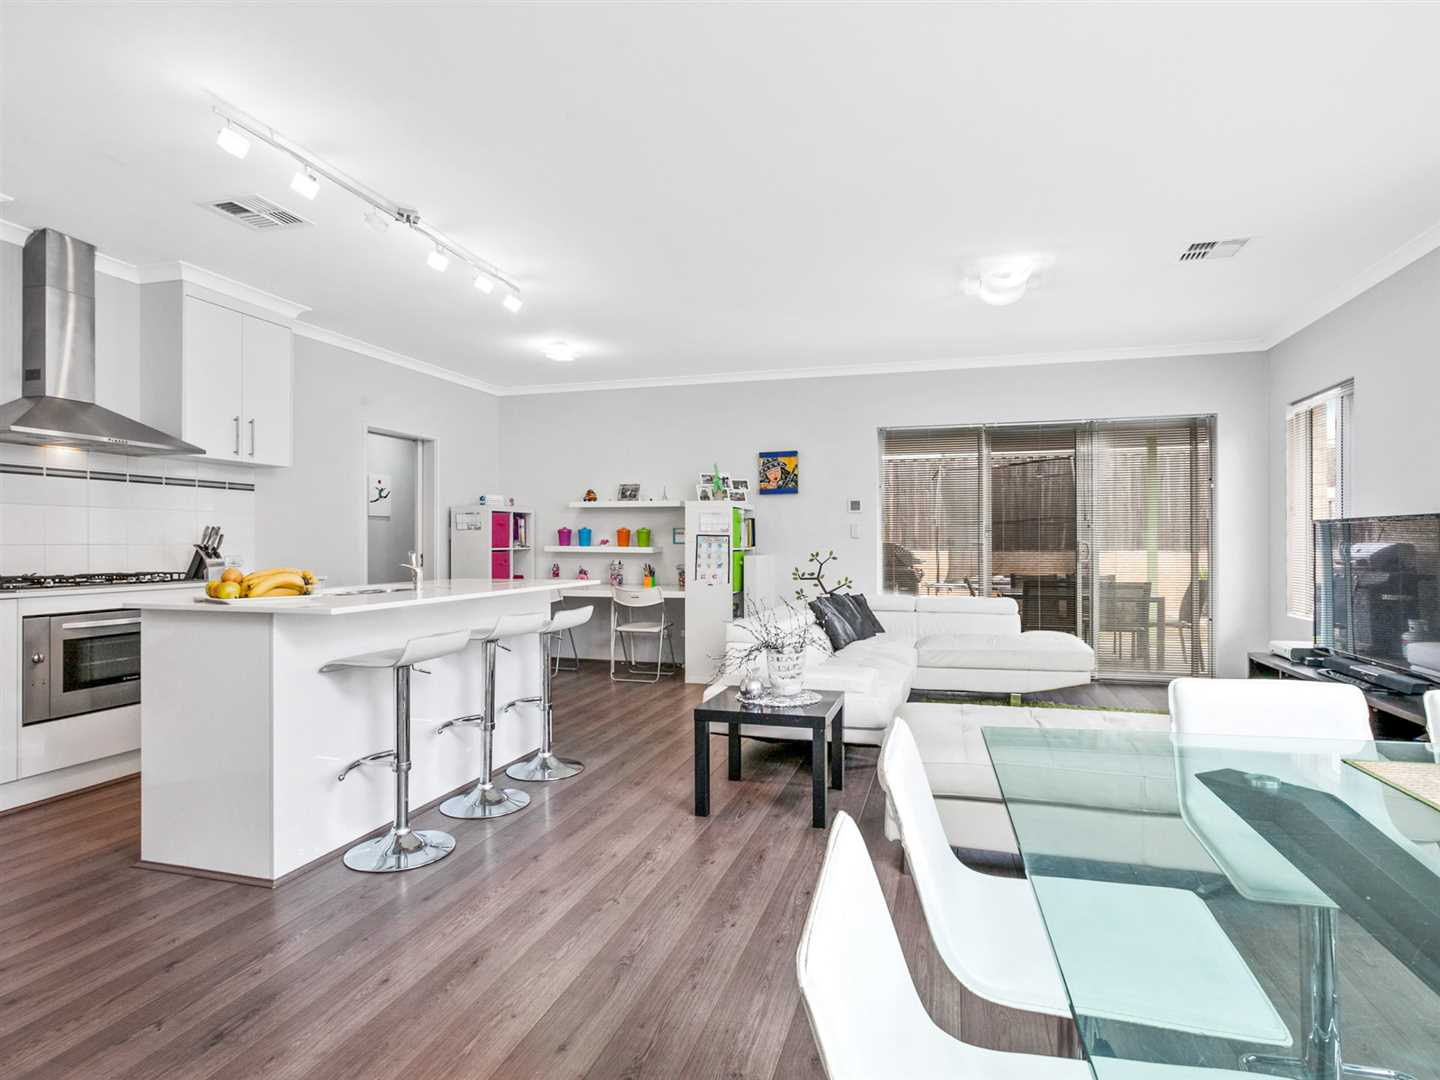 Wellard, 8 Moonstone Parkway   Harcourts Realty Plus   Harcourts